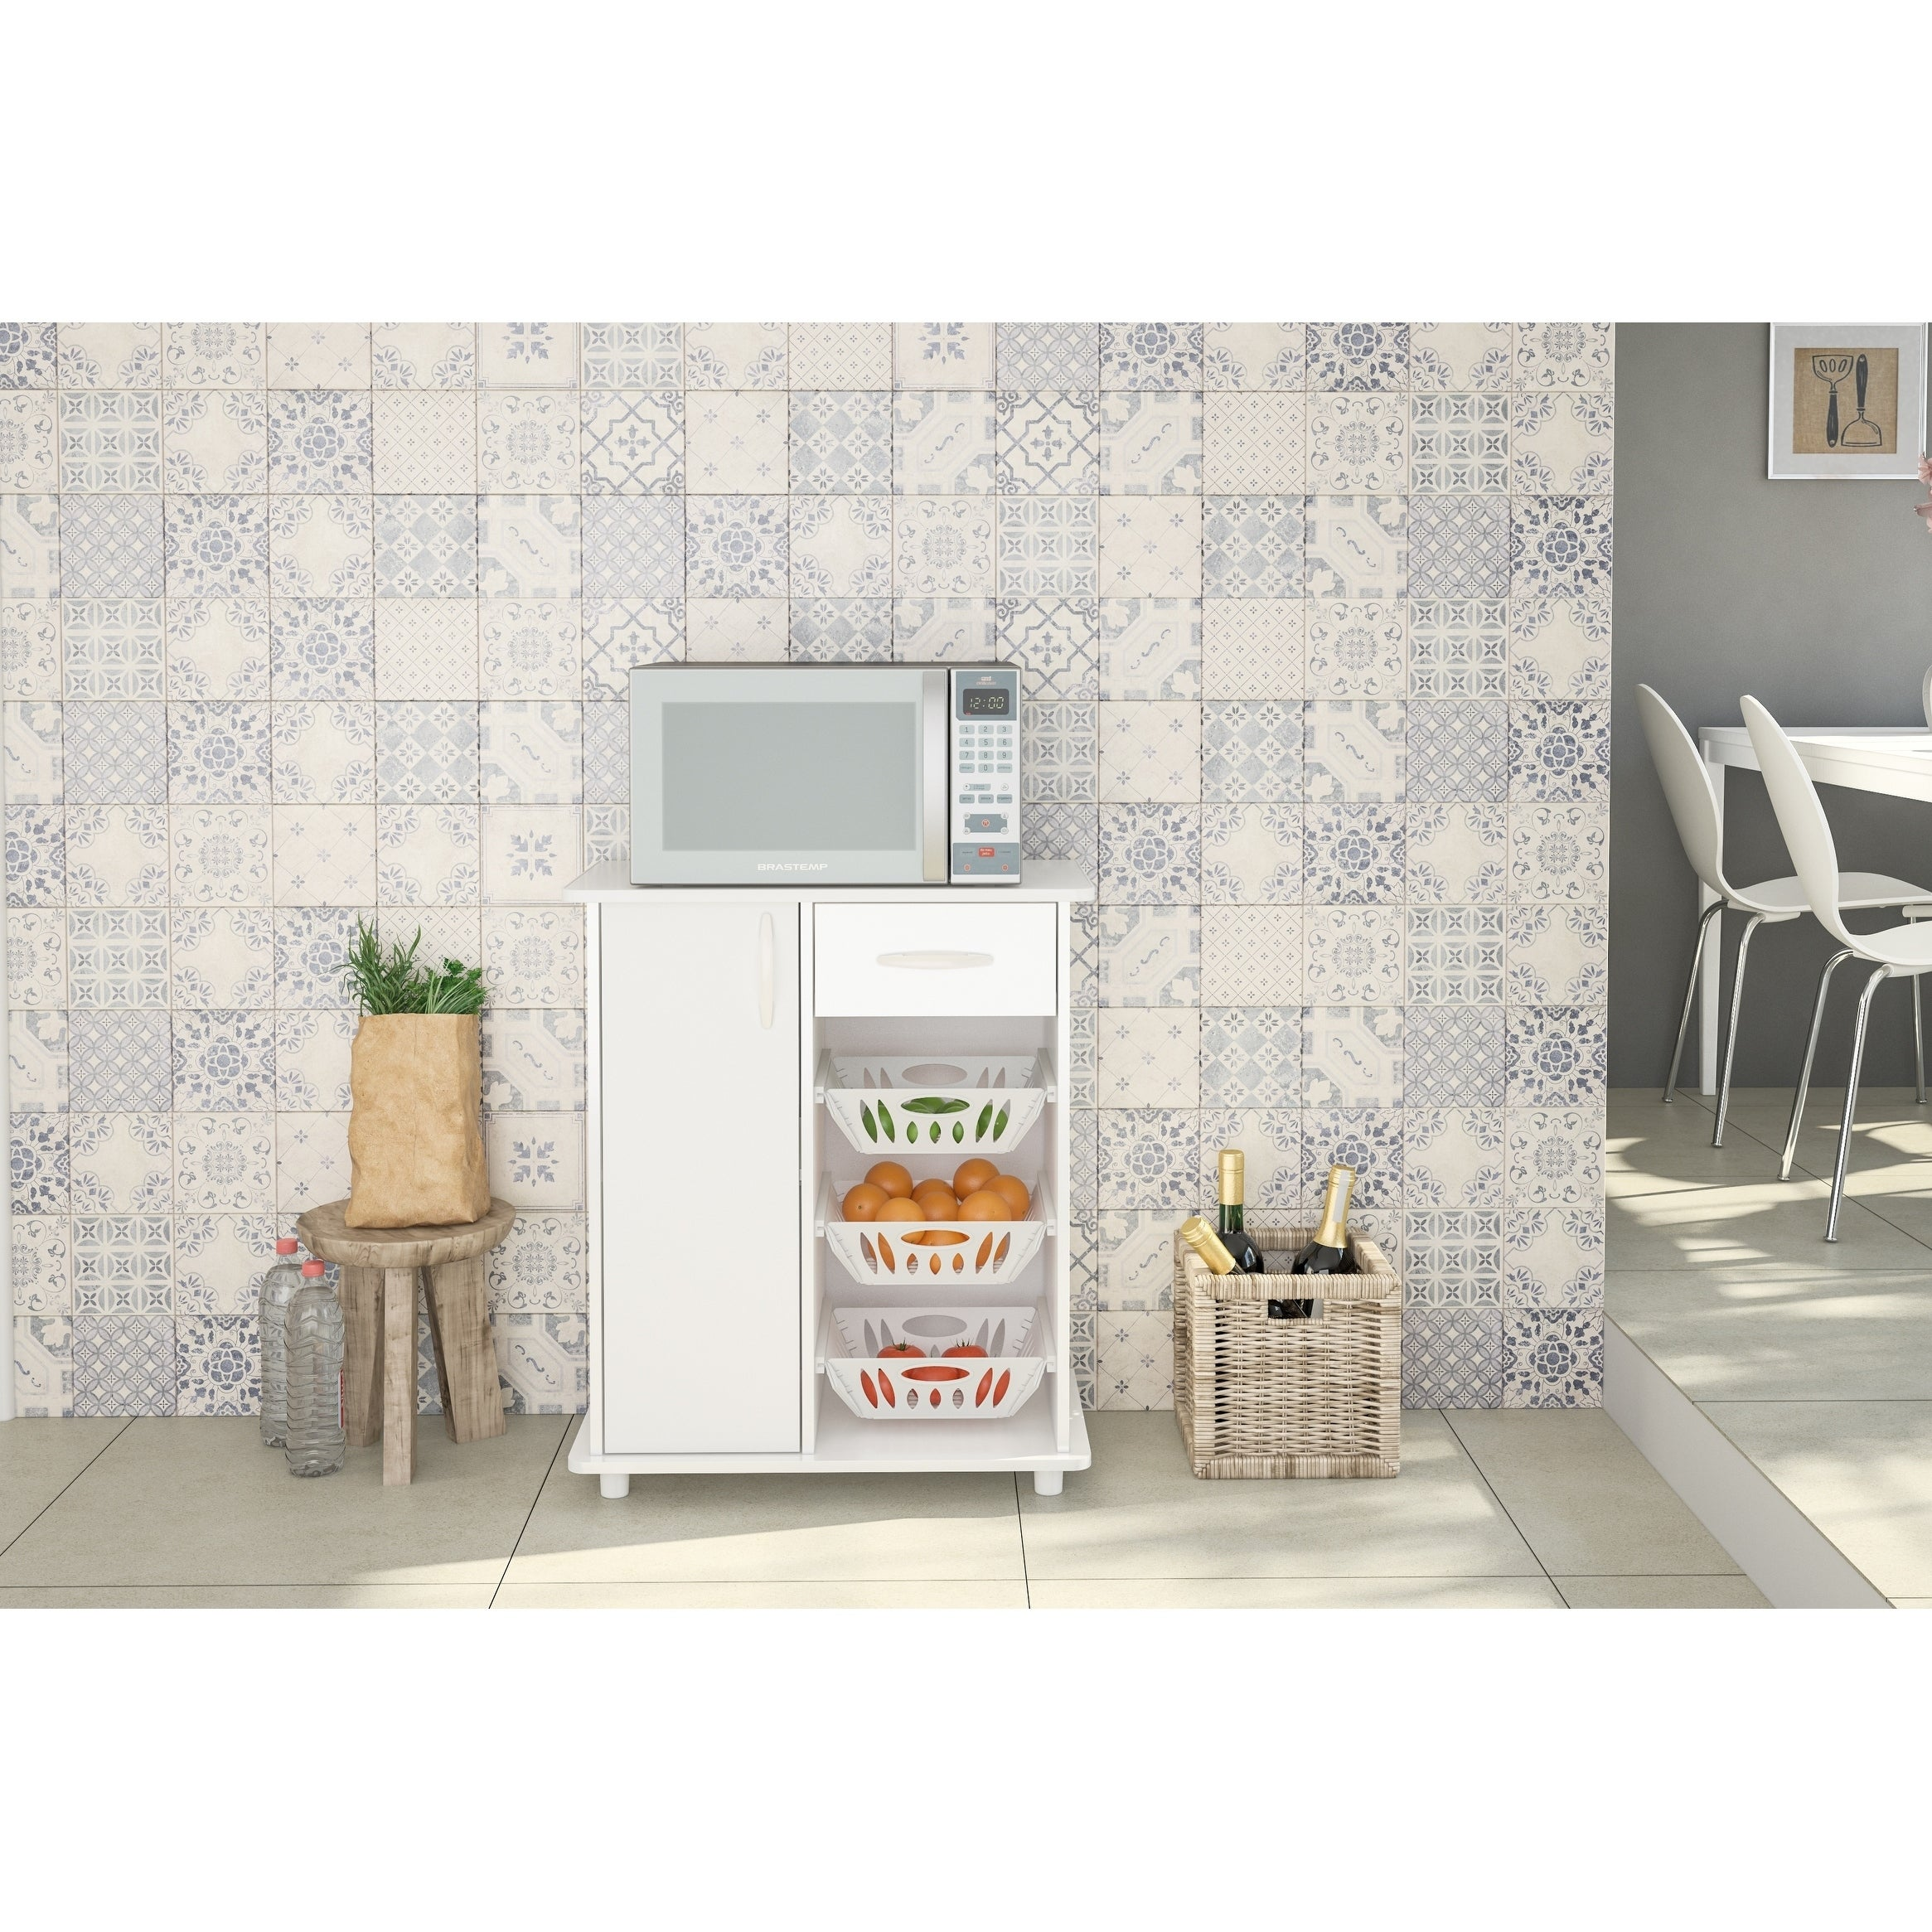 Polifurniture Compact Kitchen Cabinet With 3 Baskets White